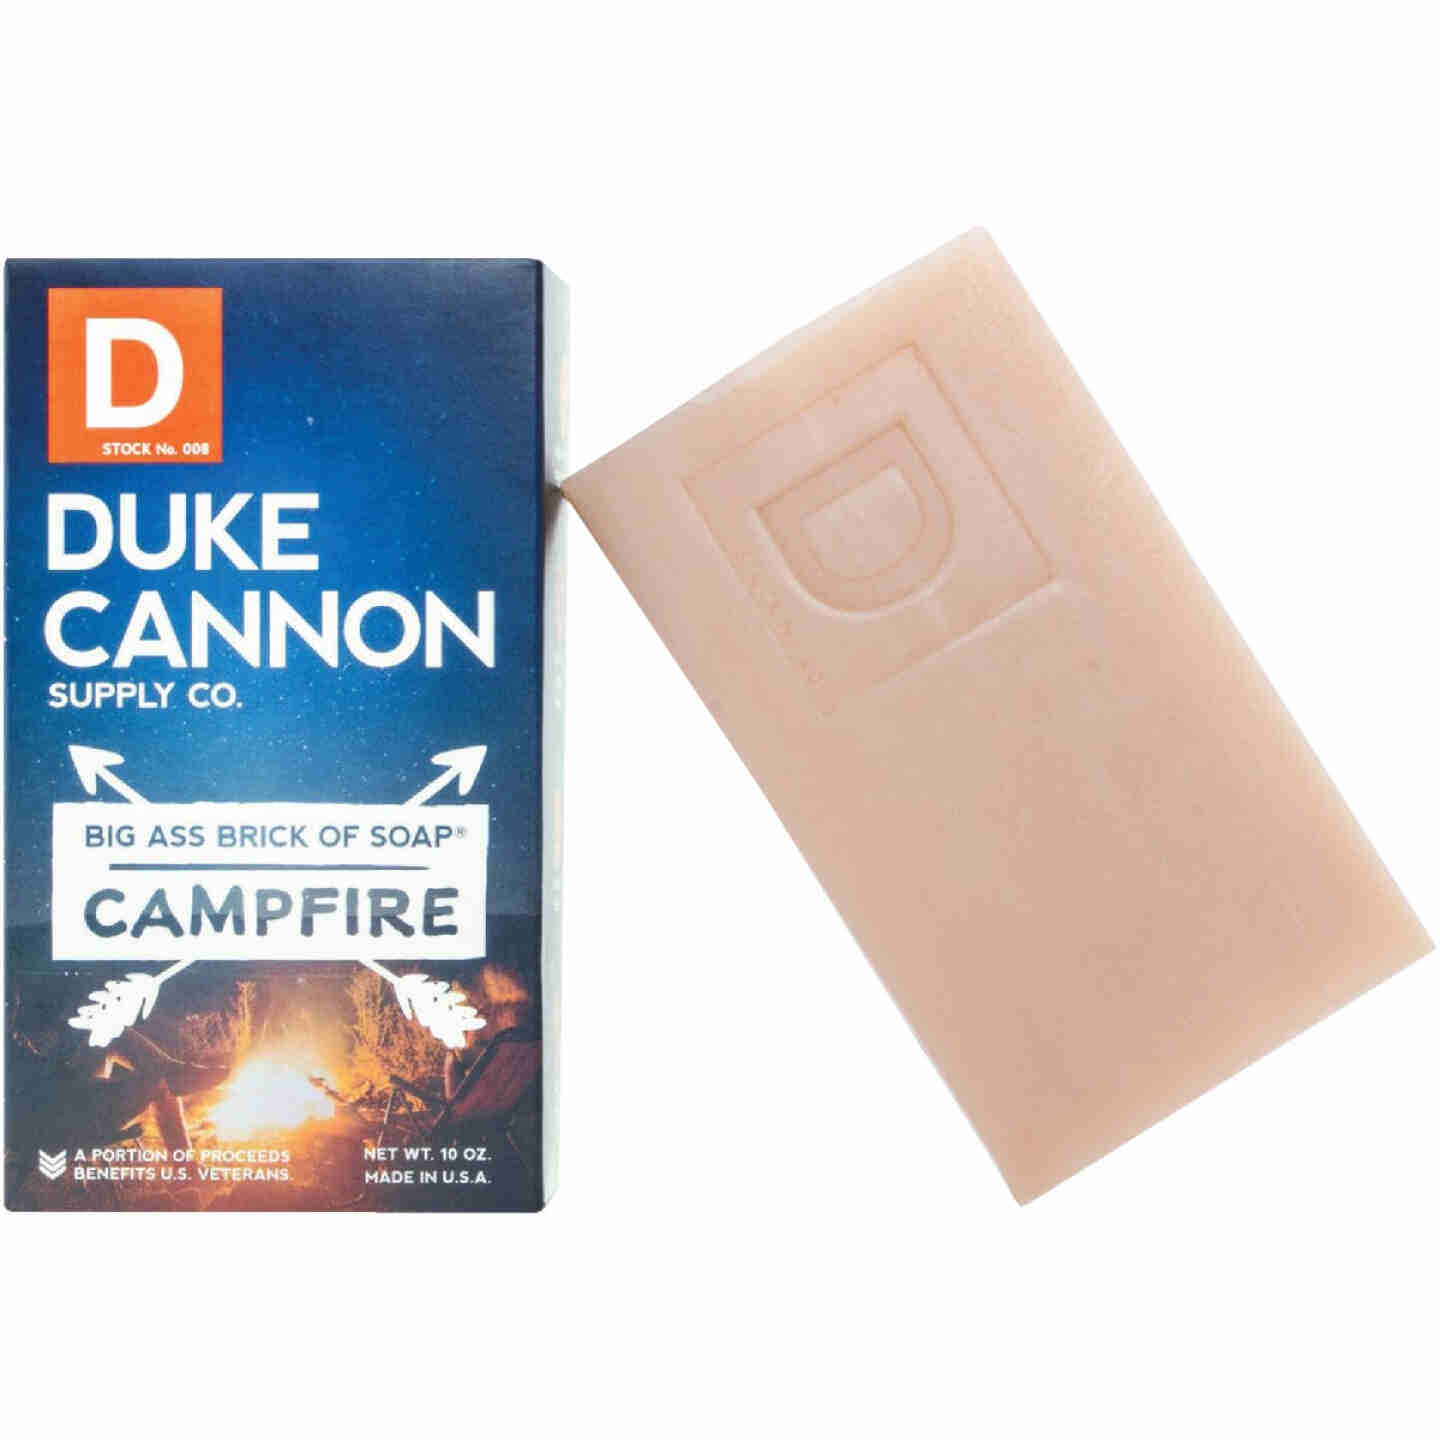 Duke Cannon 10 Oz. Campfire Big Ass Brick of Soap Image 1